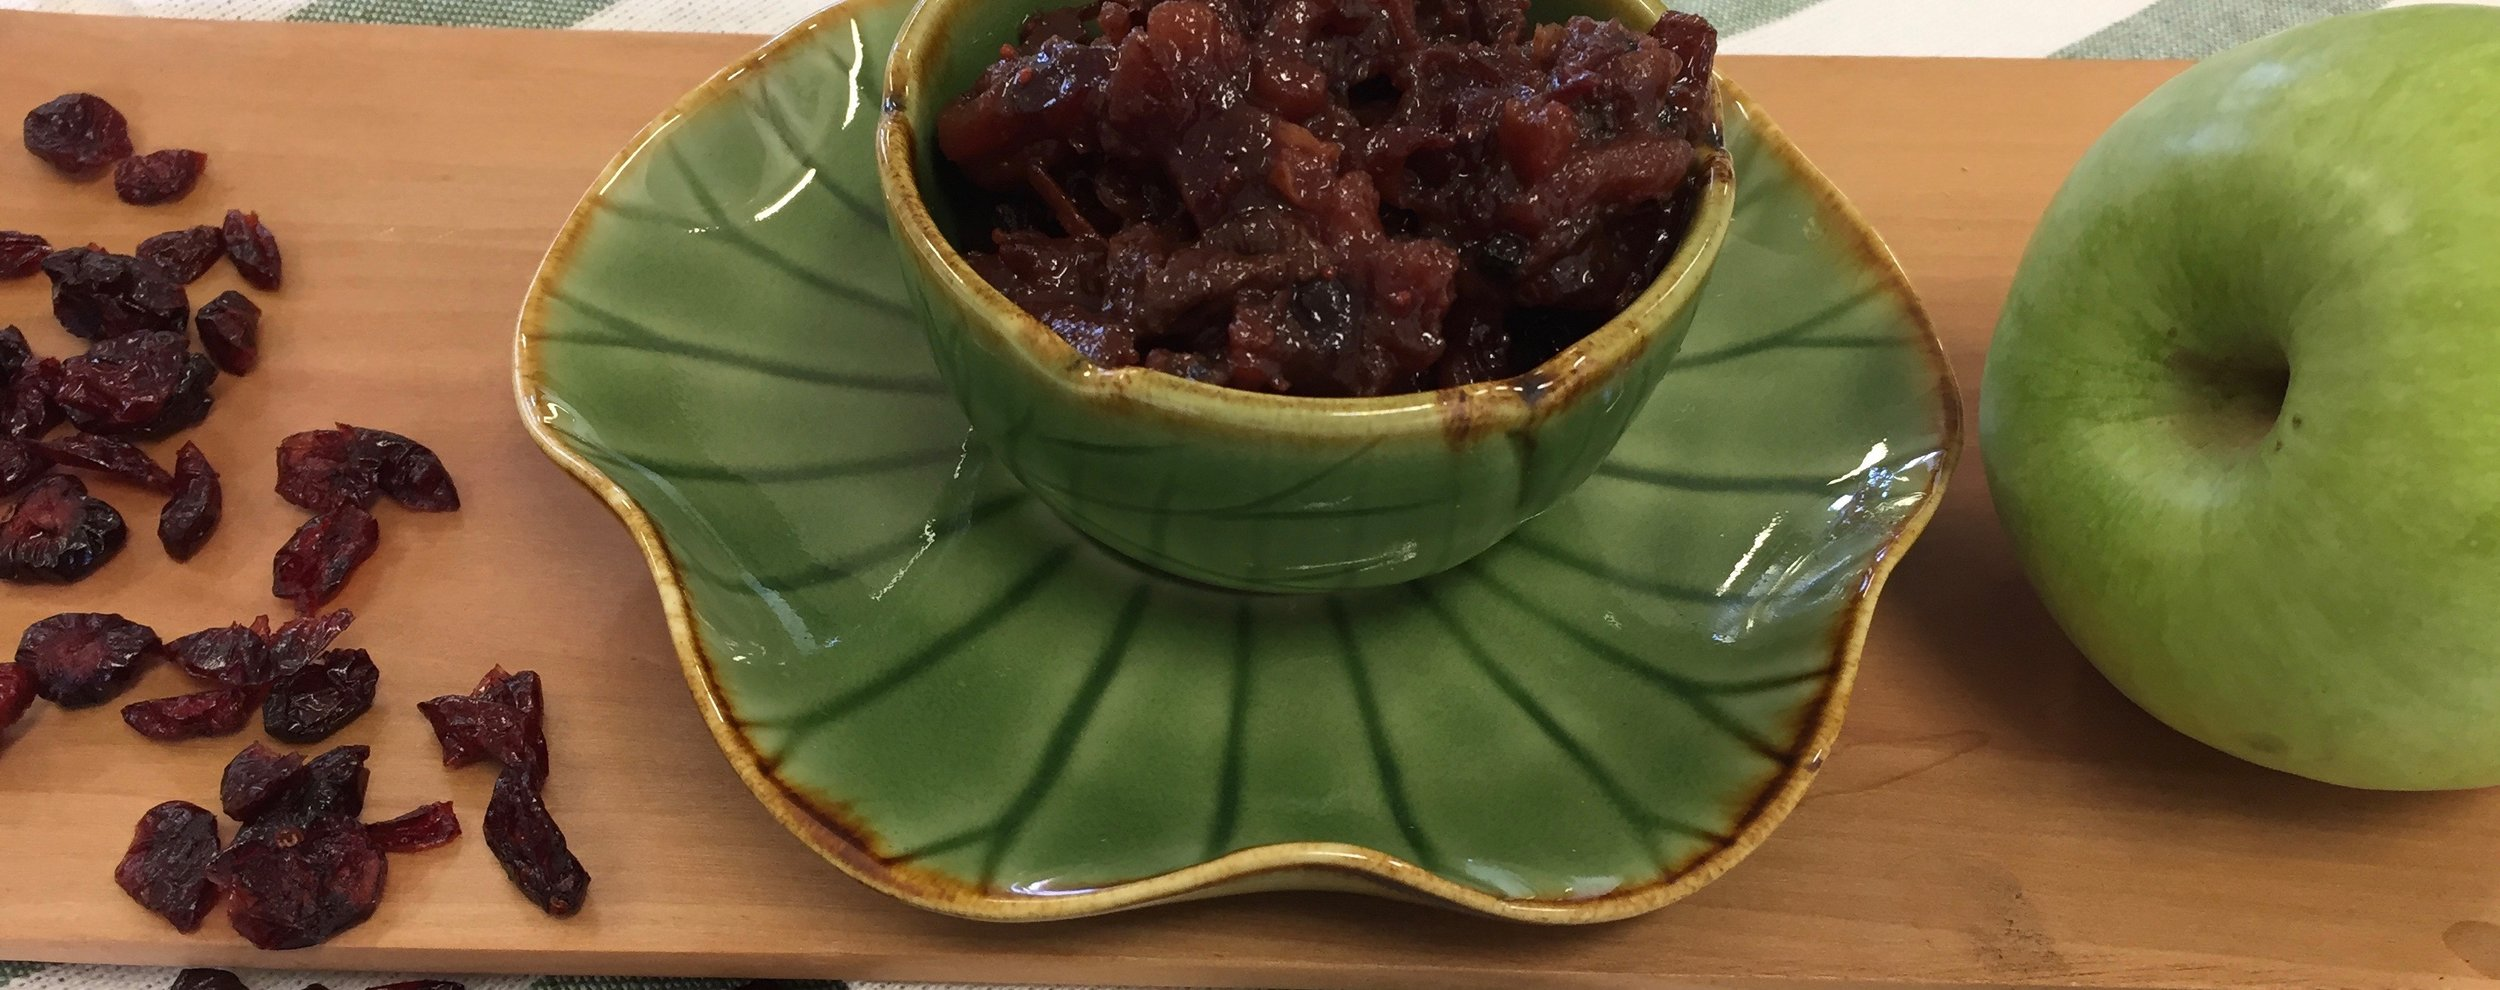 - Cranberries are full of Vitamin C, A and K. A natural go to for urinary tract infections.Most importantly they are a fat emulsifier,helping your lymphatic transport system flow.Cranberry ChutneyYields - 2 jars.4 cups Frozen Cranberries2 cloves Garlic2 tsps. Cinnamon2 tsps. Ginger (finely grated)1 cup Cranberry Juice (unsweetened)1 tbsp Orange Rind1/3 cup Coconut Sugar (or maple syrup)3 tbsps Currants5 Black Peppercorns2 Apples (Granny Smith)4 Whole Cloves1 Green Chili (Finely diced)1 tsp Ghee1 tsp Cumin SeedsIn a medium saucepan, combine cranberries, apples, currants, spices, ginger, cranberry juice, and orange zest. Allow the mixture to come to a boil over medium high heat. Add in sweetener (coconut sugar or maple syrup) after turning the heat down to low.Simmer for about 20 minutes, until chutney thickens to a jam like consistency. You may want to remove the cloves to avoid biting into one, or leave them in to further infuse the chutney. Heat the ghee add cumin seeds and the finely diced chilli. Temper the chutney by adding this heated mixture to the chutney. Serve with roasted vegetables steamed greens or vegetable fritters.Note: If you don't have frozen cranberries, use reduced sugar cranberries but only 2 cups. Add an extra cup of cranberry juice and 1/2 cup orange juice. You may have to add water to keep the mixture from drying.